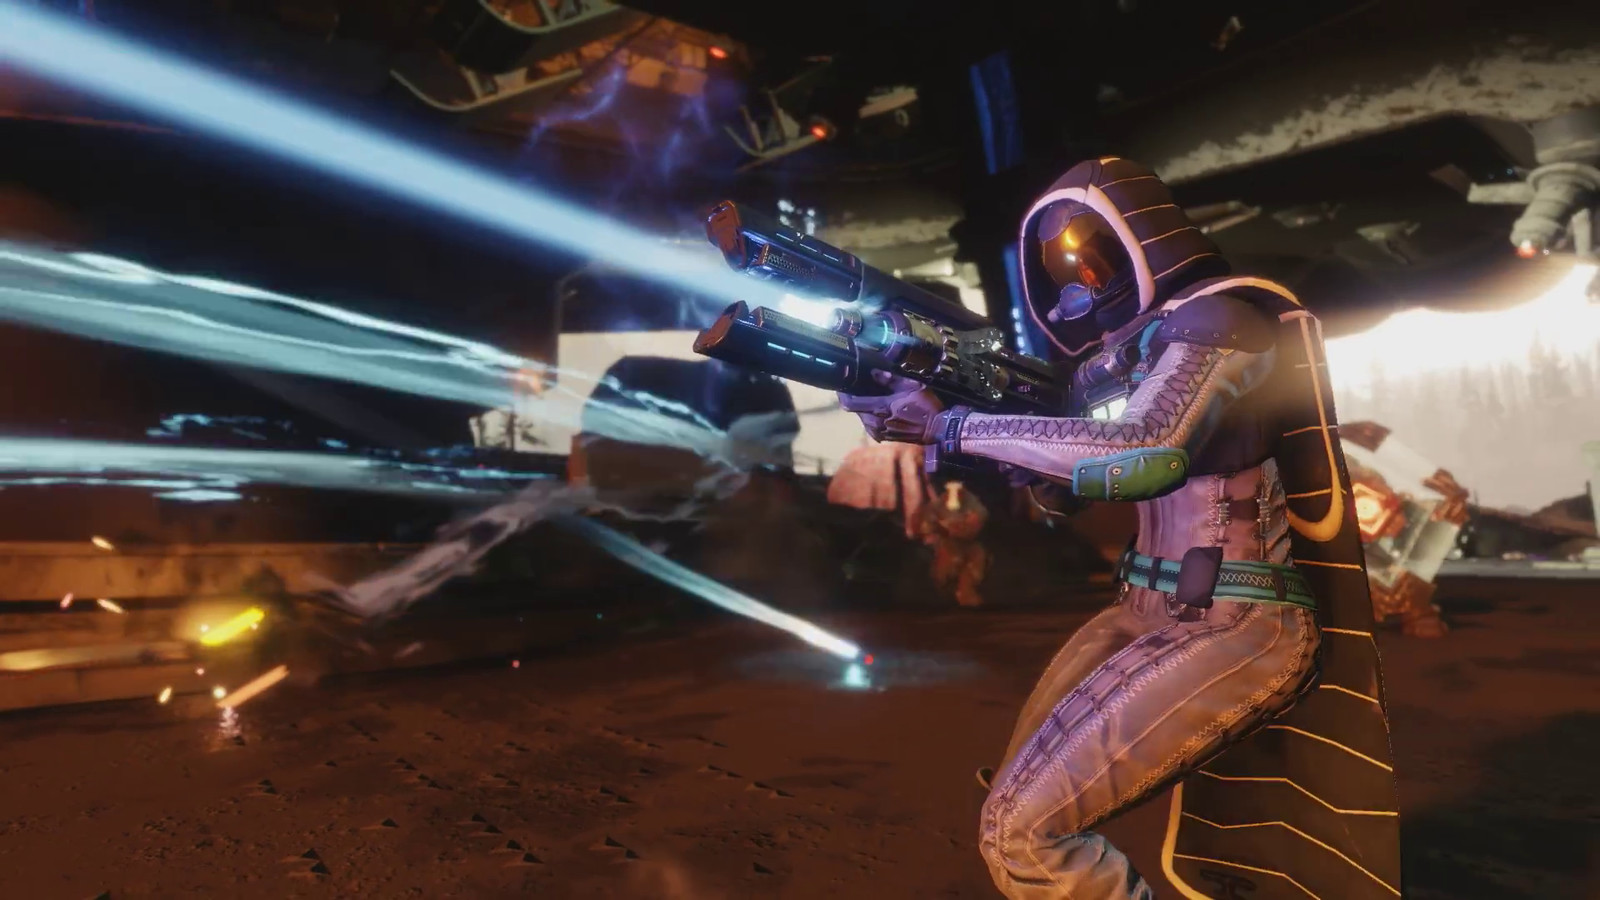 Destiny 2 - Guardian firing exotic trace rifle Coldheart